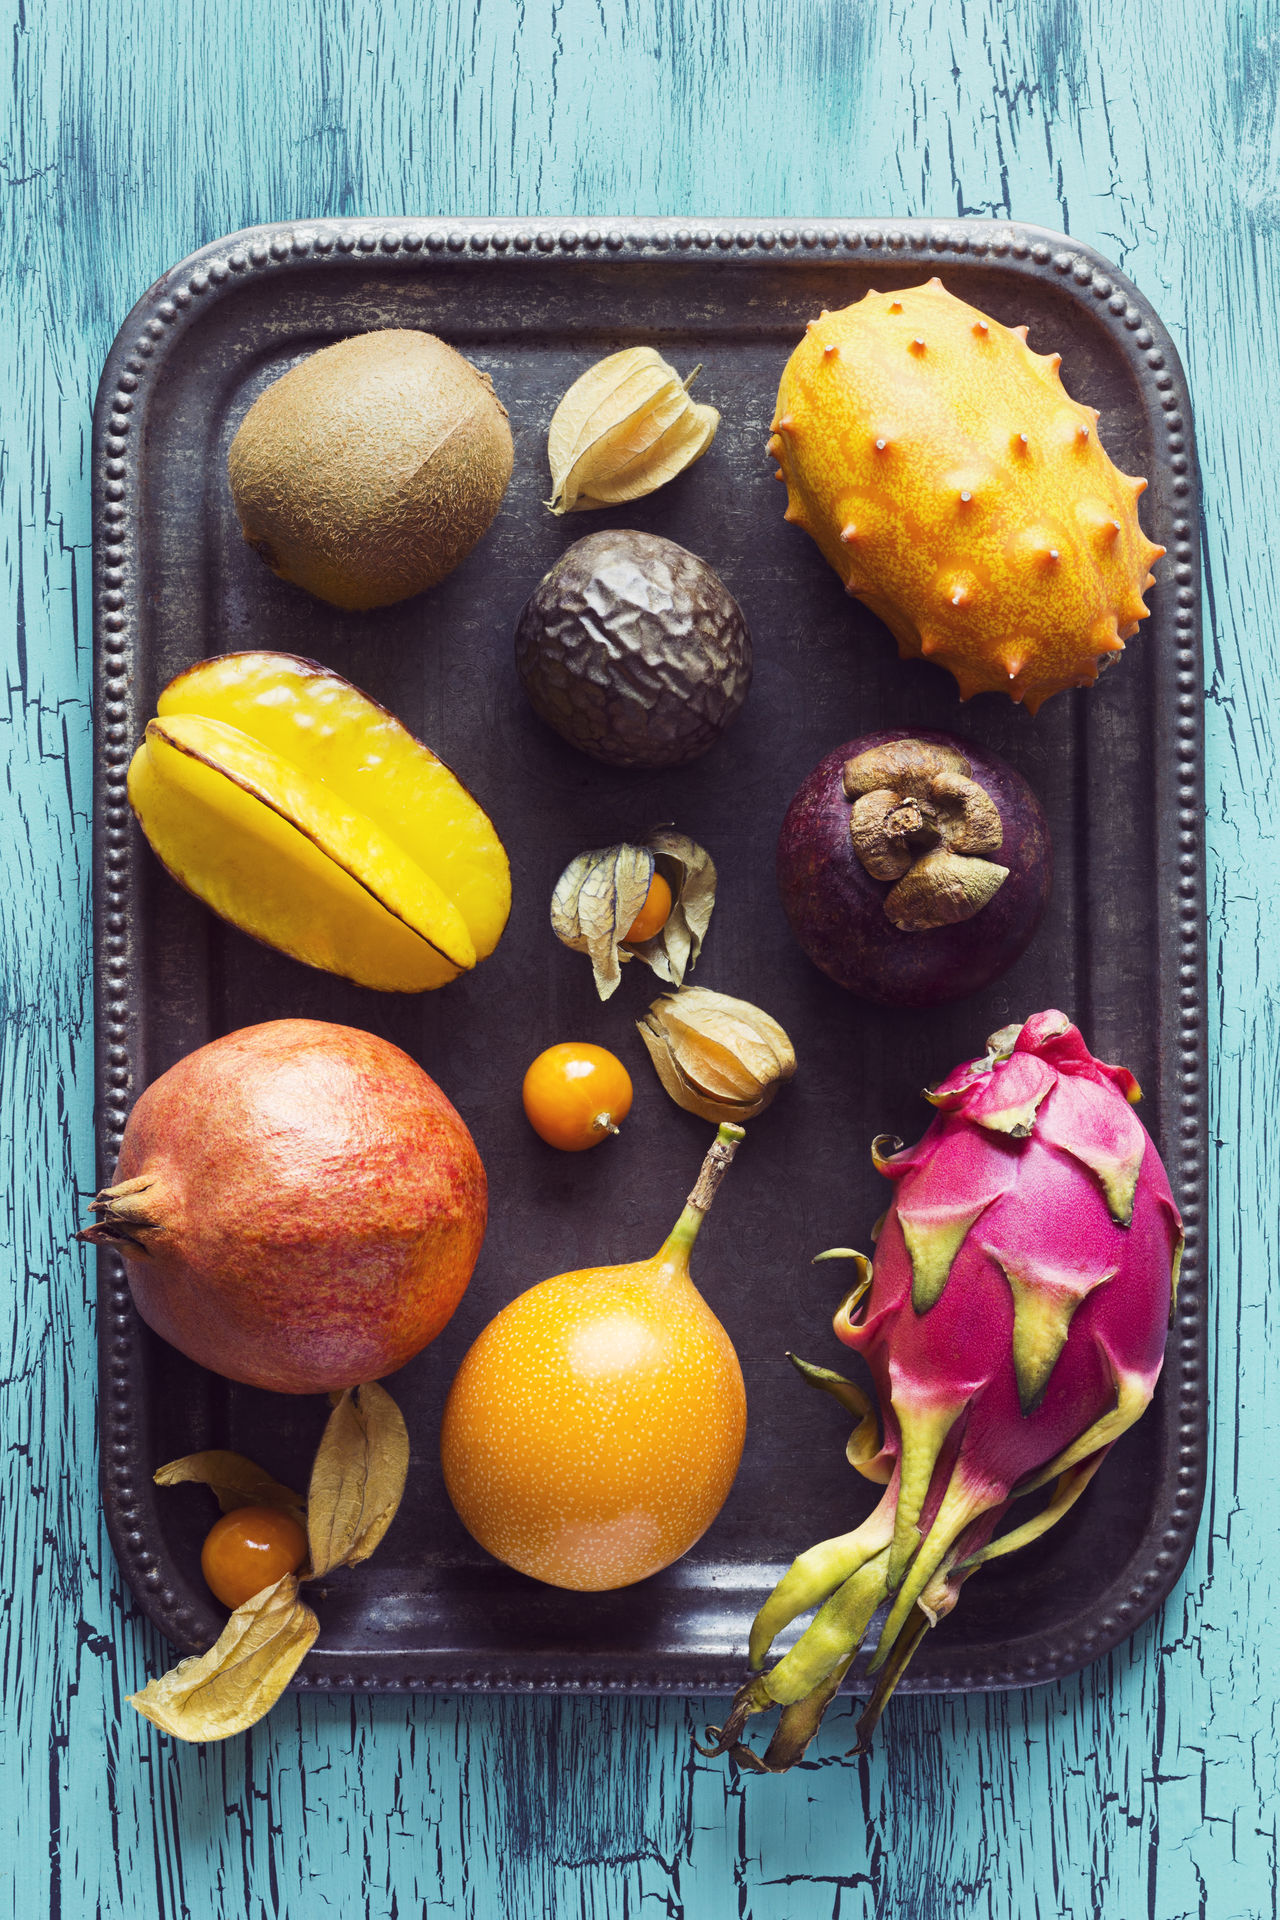 Blue Cape Gooseberry Carambola Dragonfruit Flat Lay Food Fruit Fruits Granadilla Ingredients Kiwi Mangosteen Melano No People Passion Fruit Passionfruit Physalis Pitaya Pomegranate Star Fruit  Table Top Down Tray Tropical Fruit Visual Feast